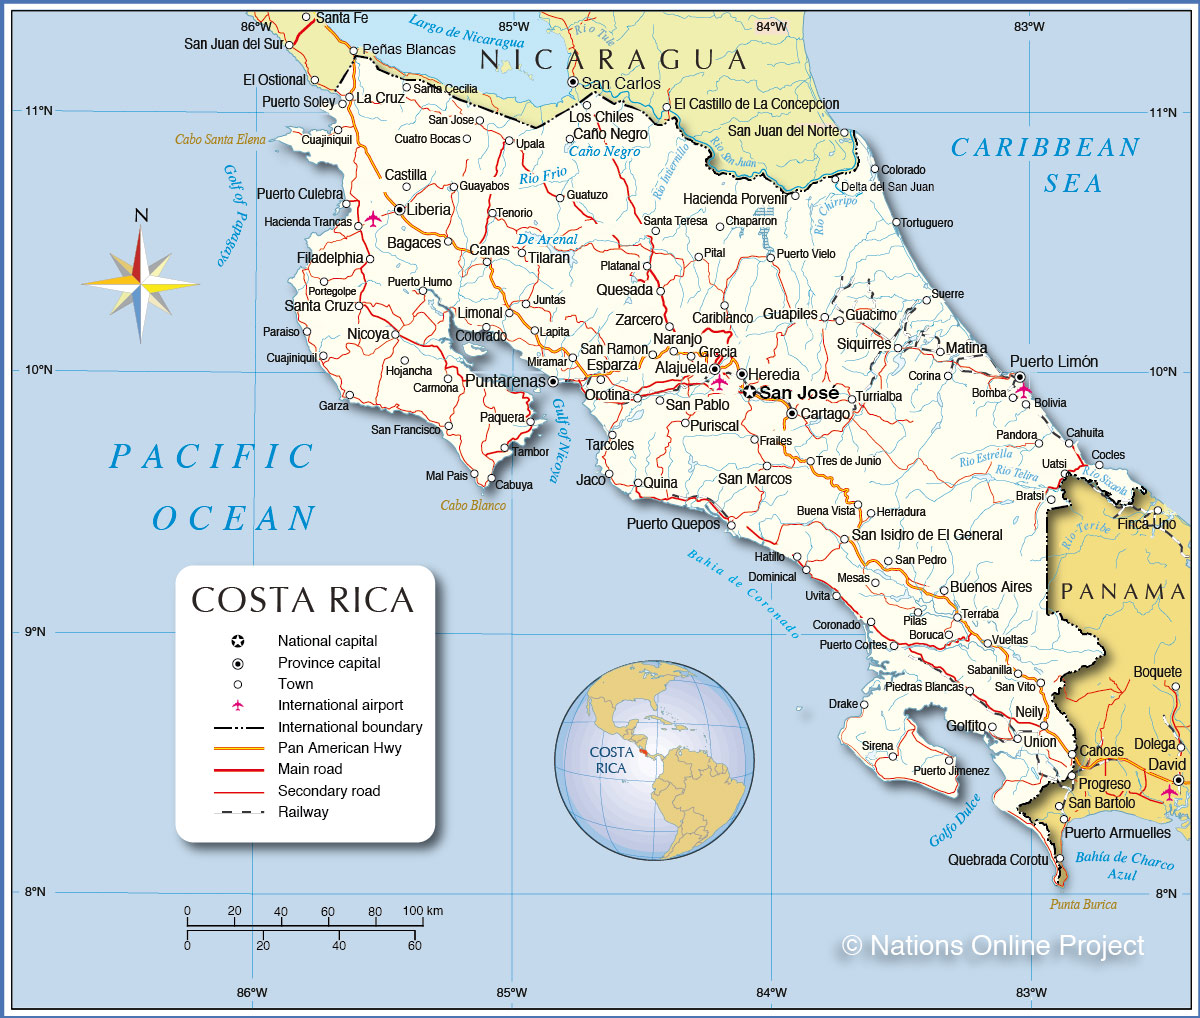 Costa Rica Maps Detailed Map of Costa Rica   Nations Online Project